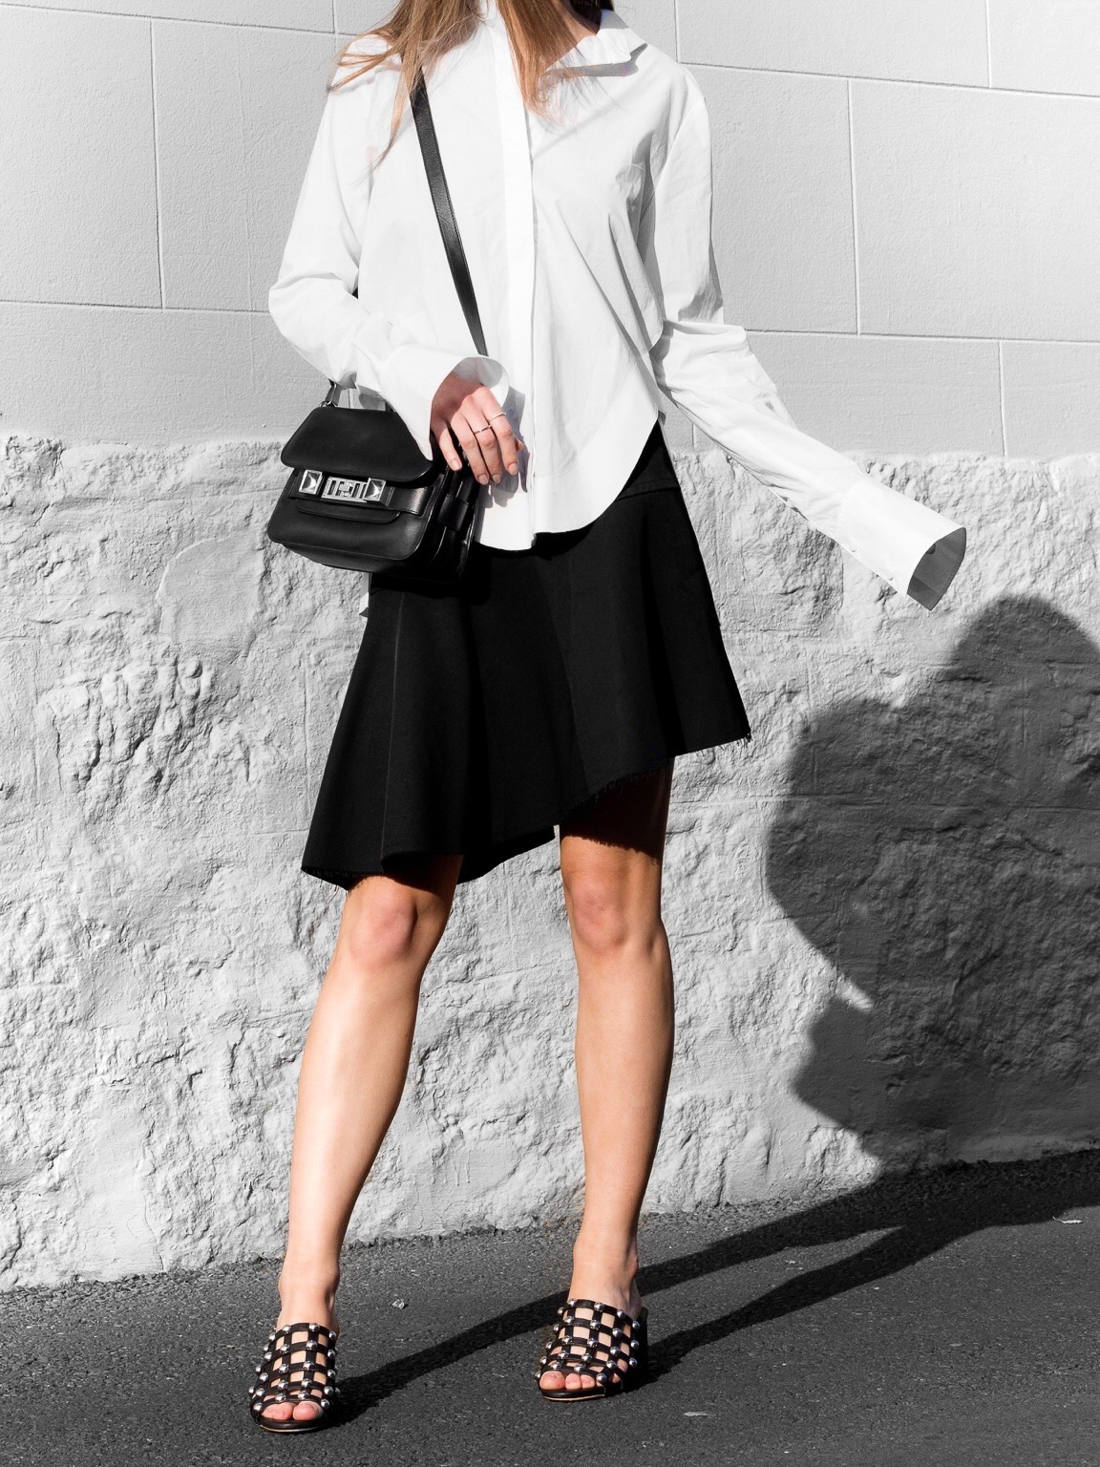 The White Shirt With A Twist Proenza Schouler PS11 mini bag outfit